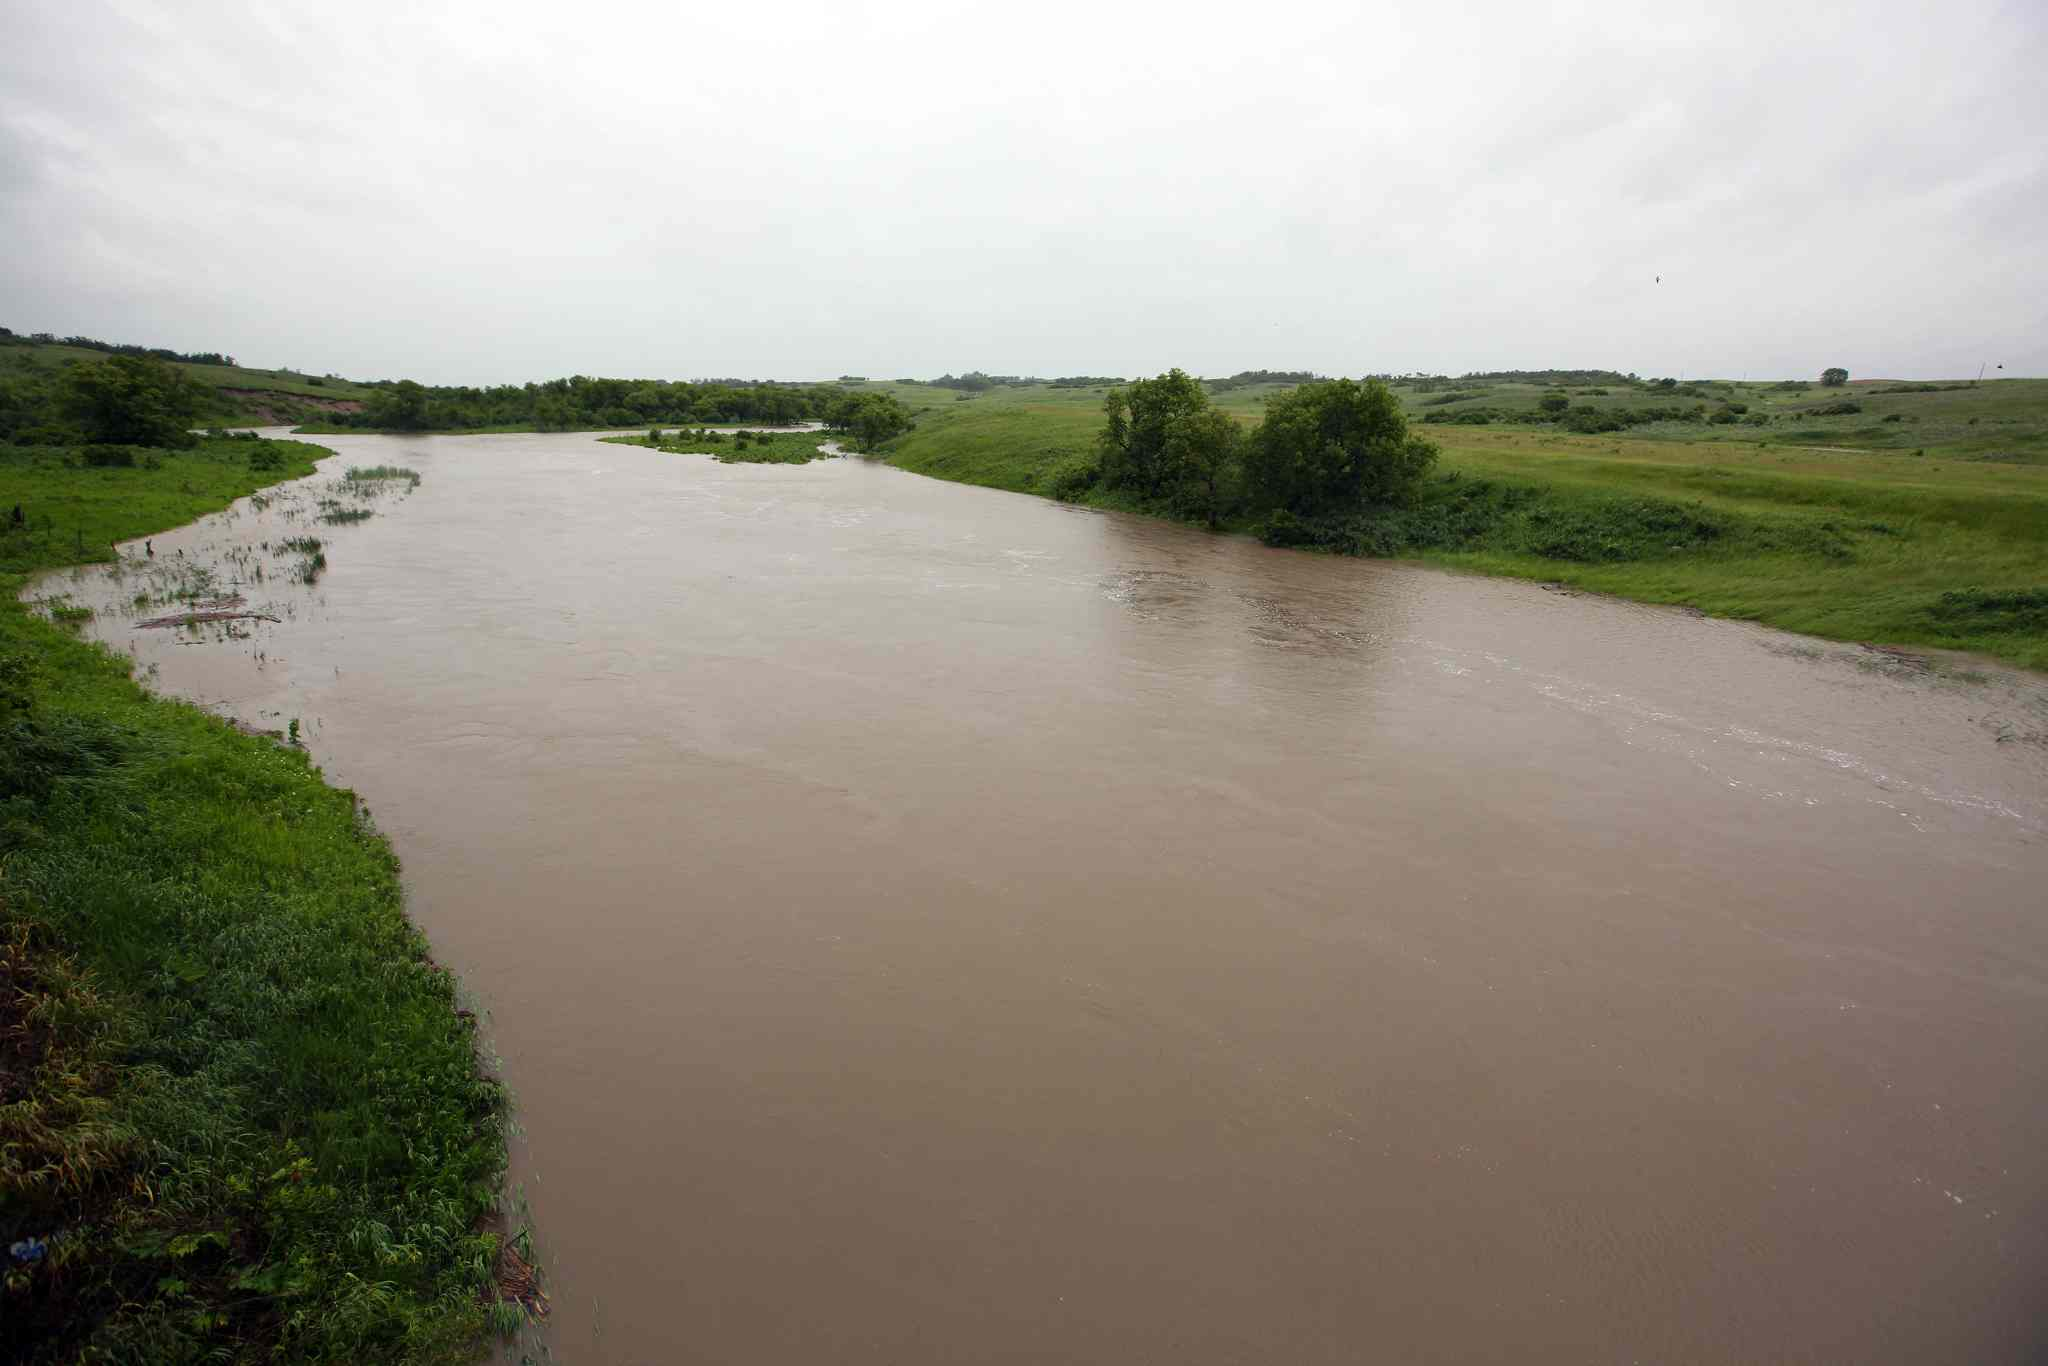 The Pipestone Creek swells over its banks west of Kola, Man. as rain falls on Sunday morning.